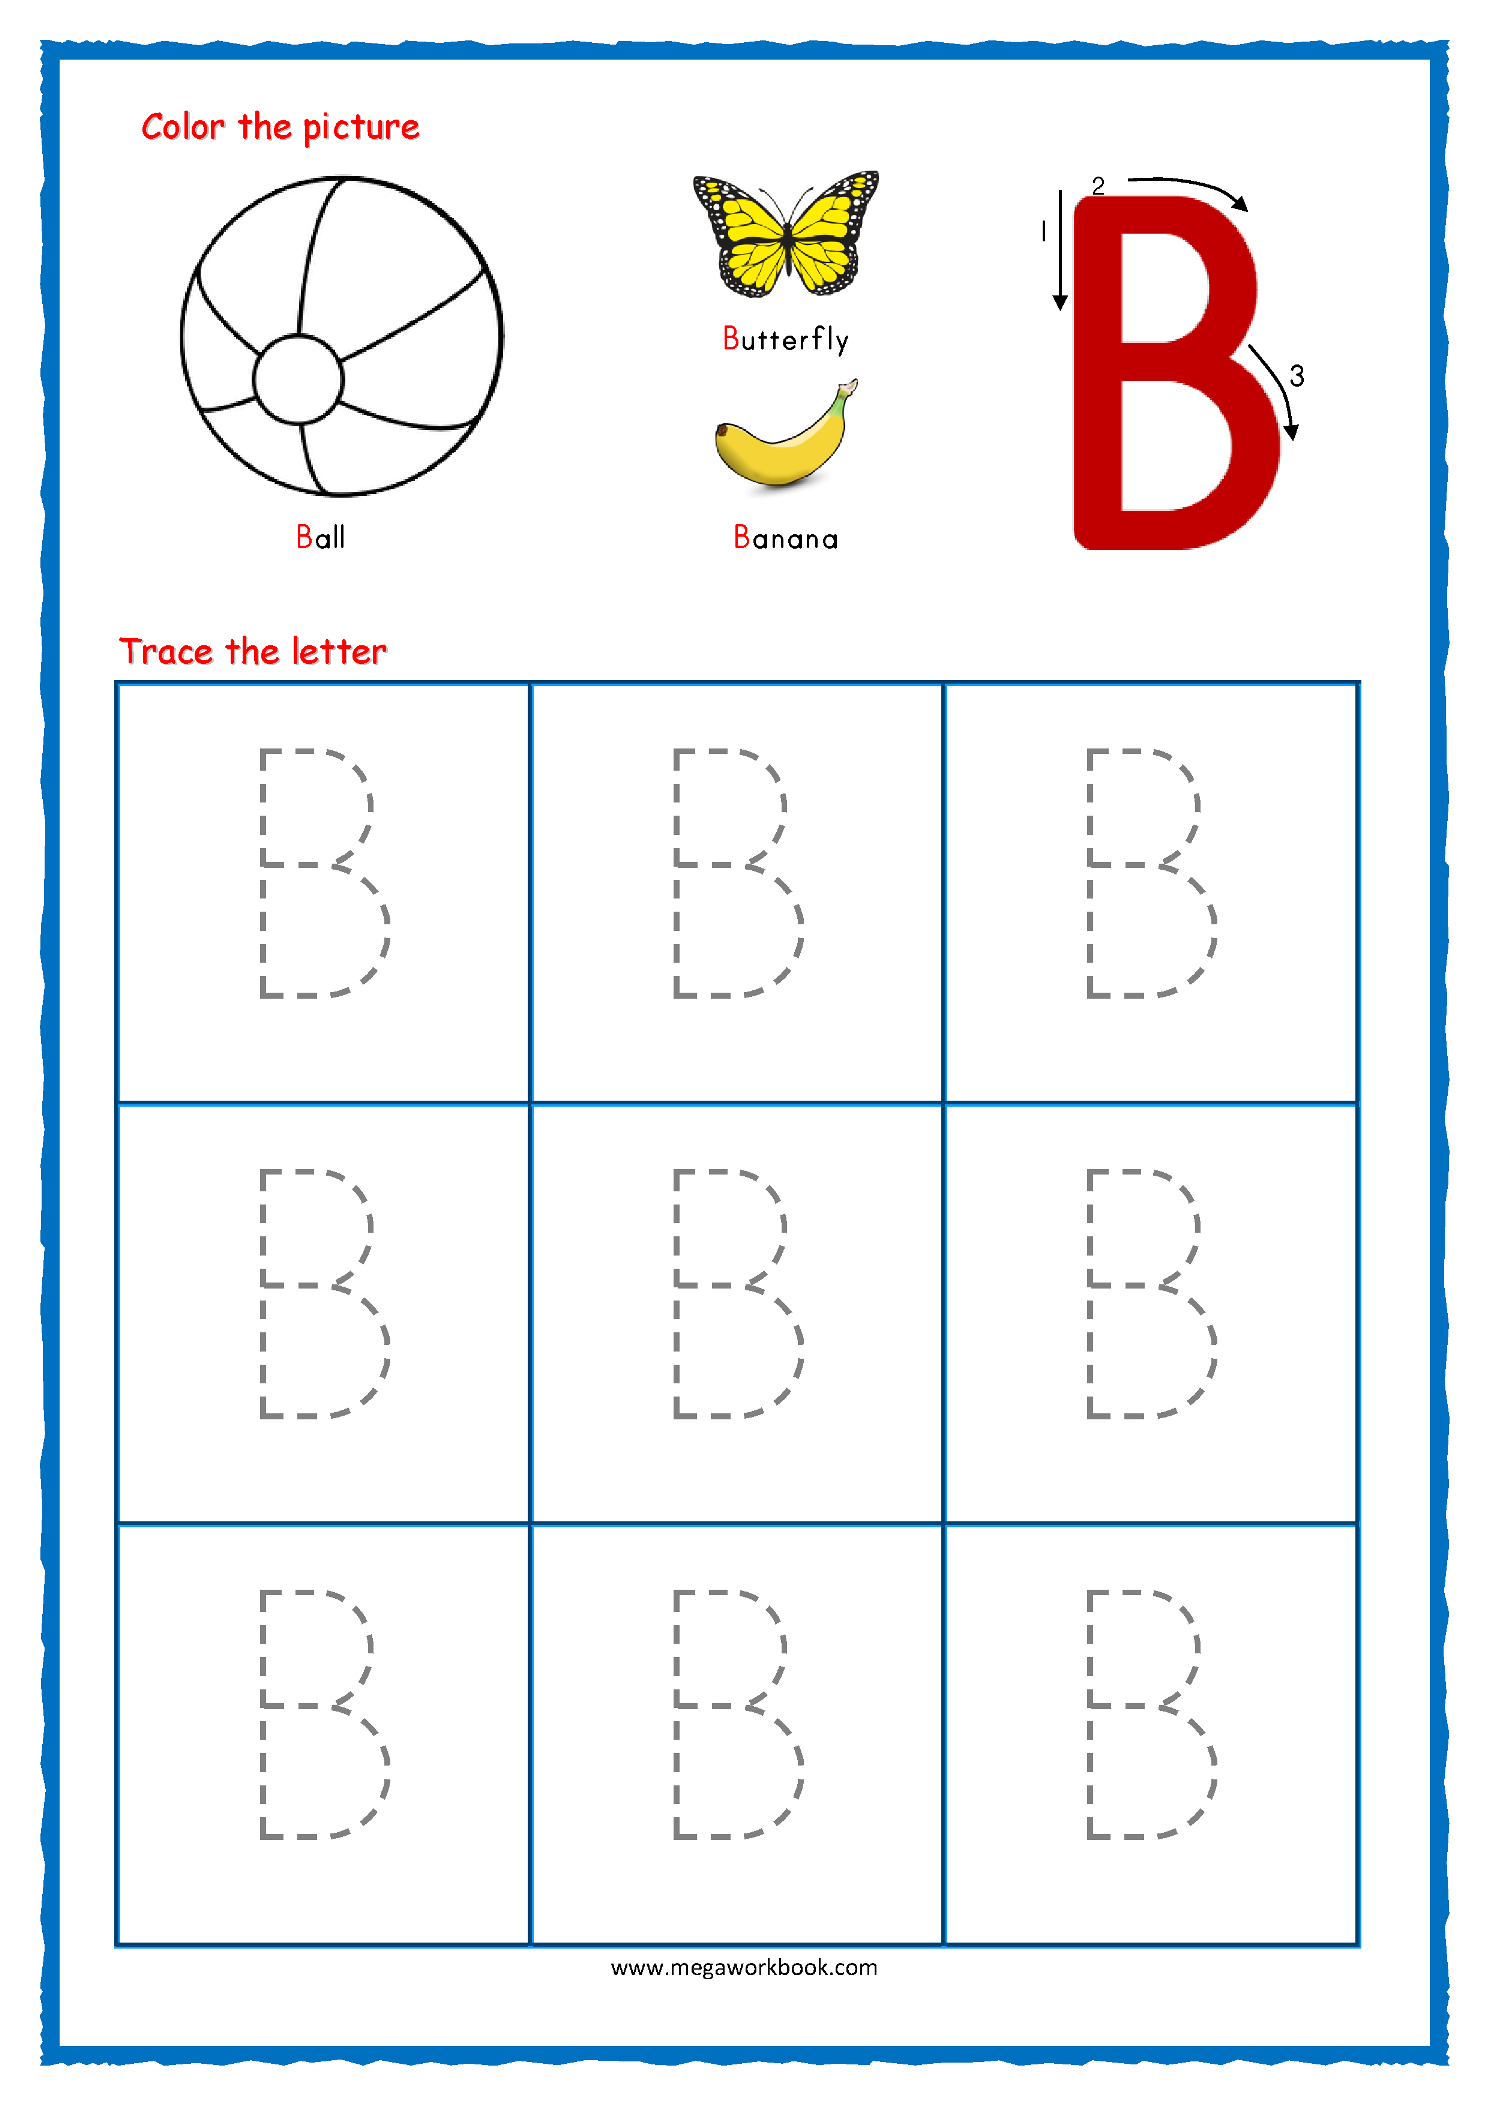 Capital_Letter_Tracing_With_Crayons_02_Alphabet_B Coloring with B Letter Worksheets